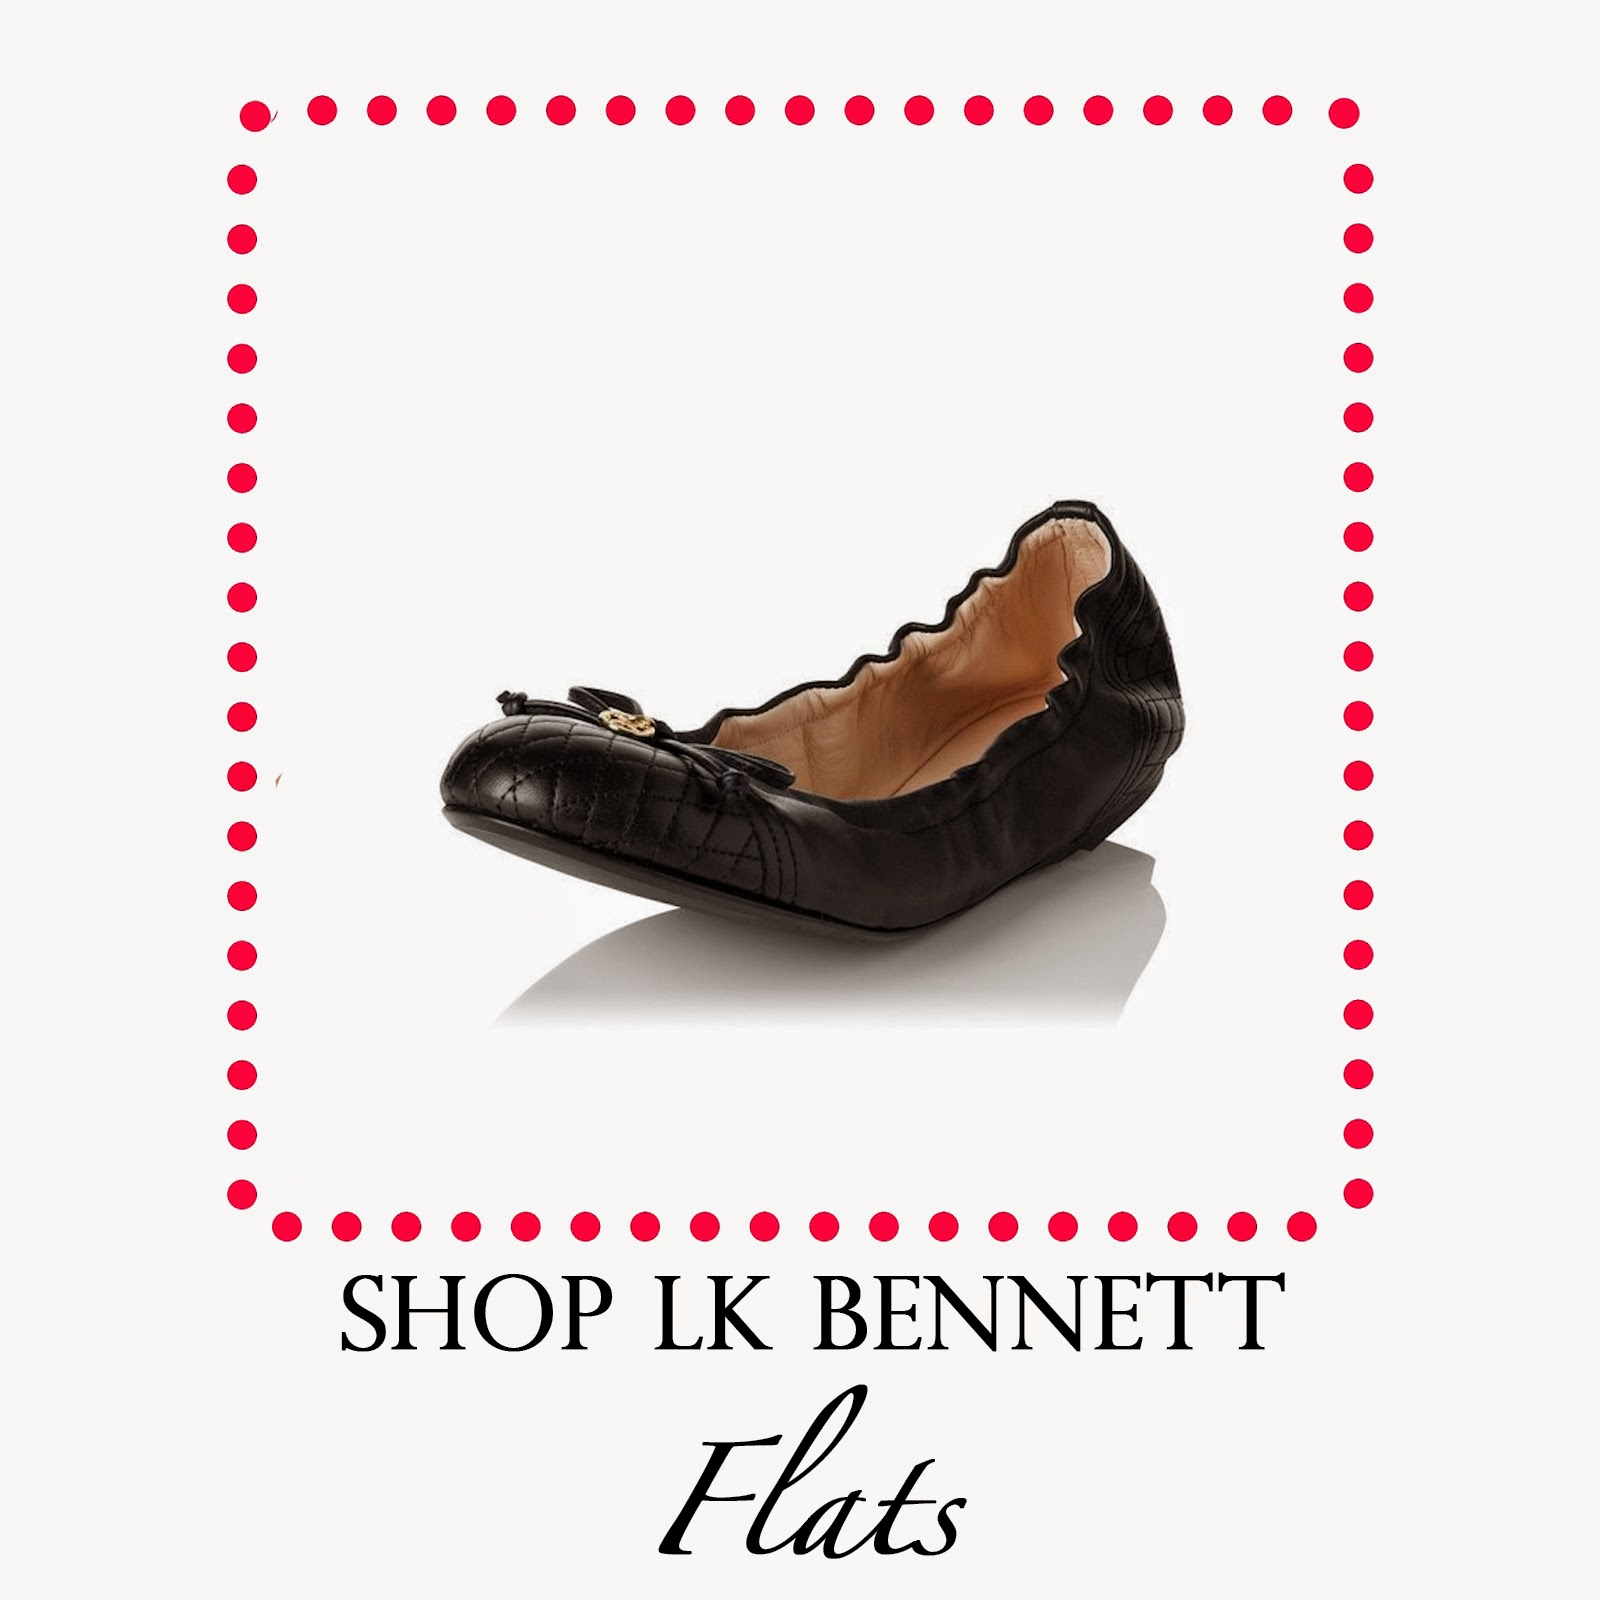 http://www.bishopboutique.com/store/pc/showsearchresults.asp?idcategory=7&customfield=&SearchValues=&priceFrom=&priceUntil=&withstock=&sku=&IDBrand=&keyWord=lk+bennett&exact=&resultCnt=8&order=&iPageCurrent=1&pageStyle=H